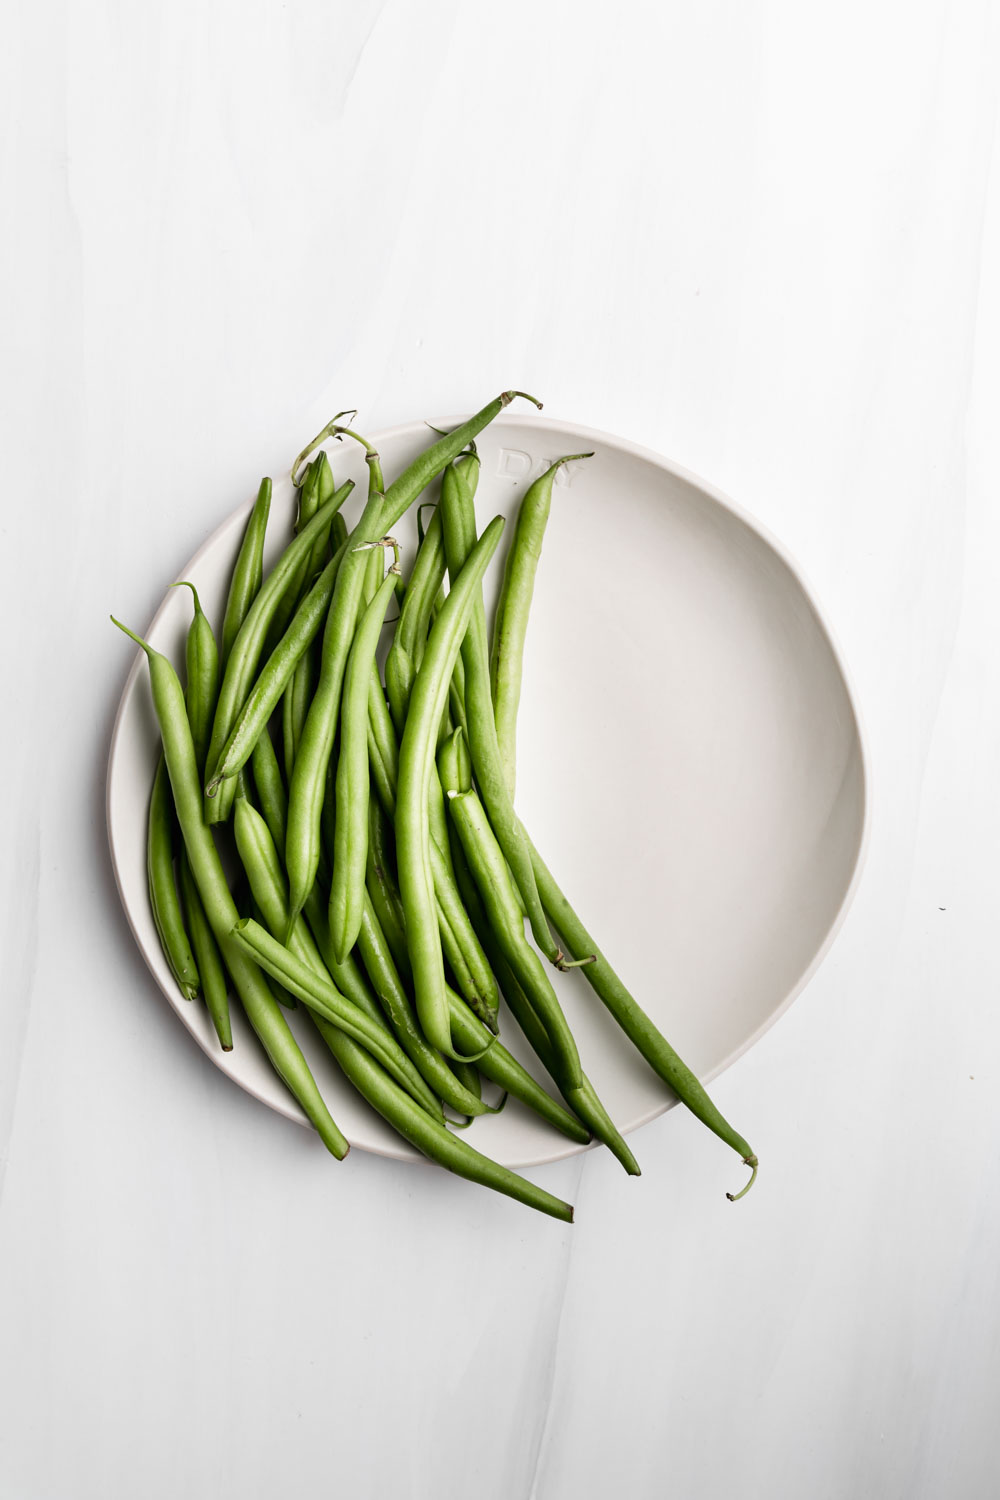 white plate with green beans for making easy green beans recipe